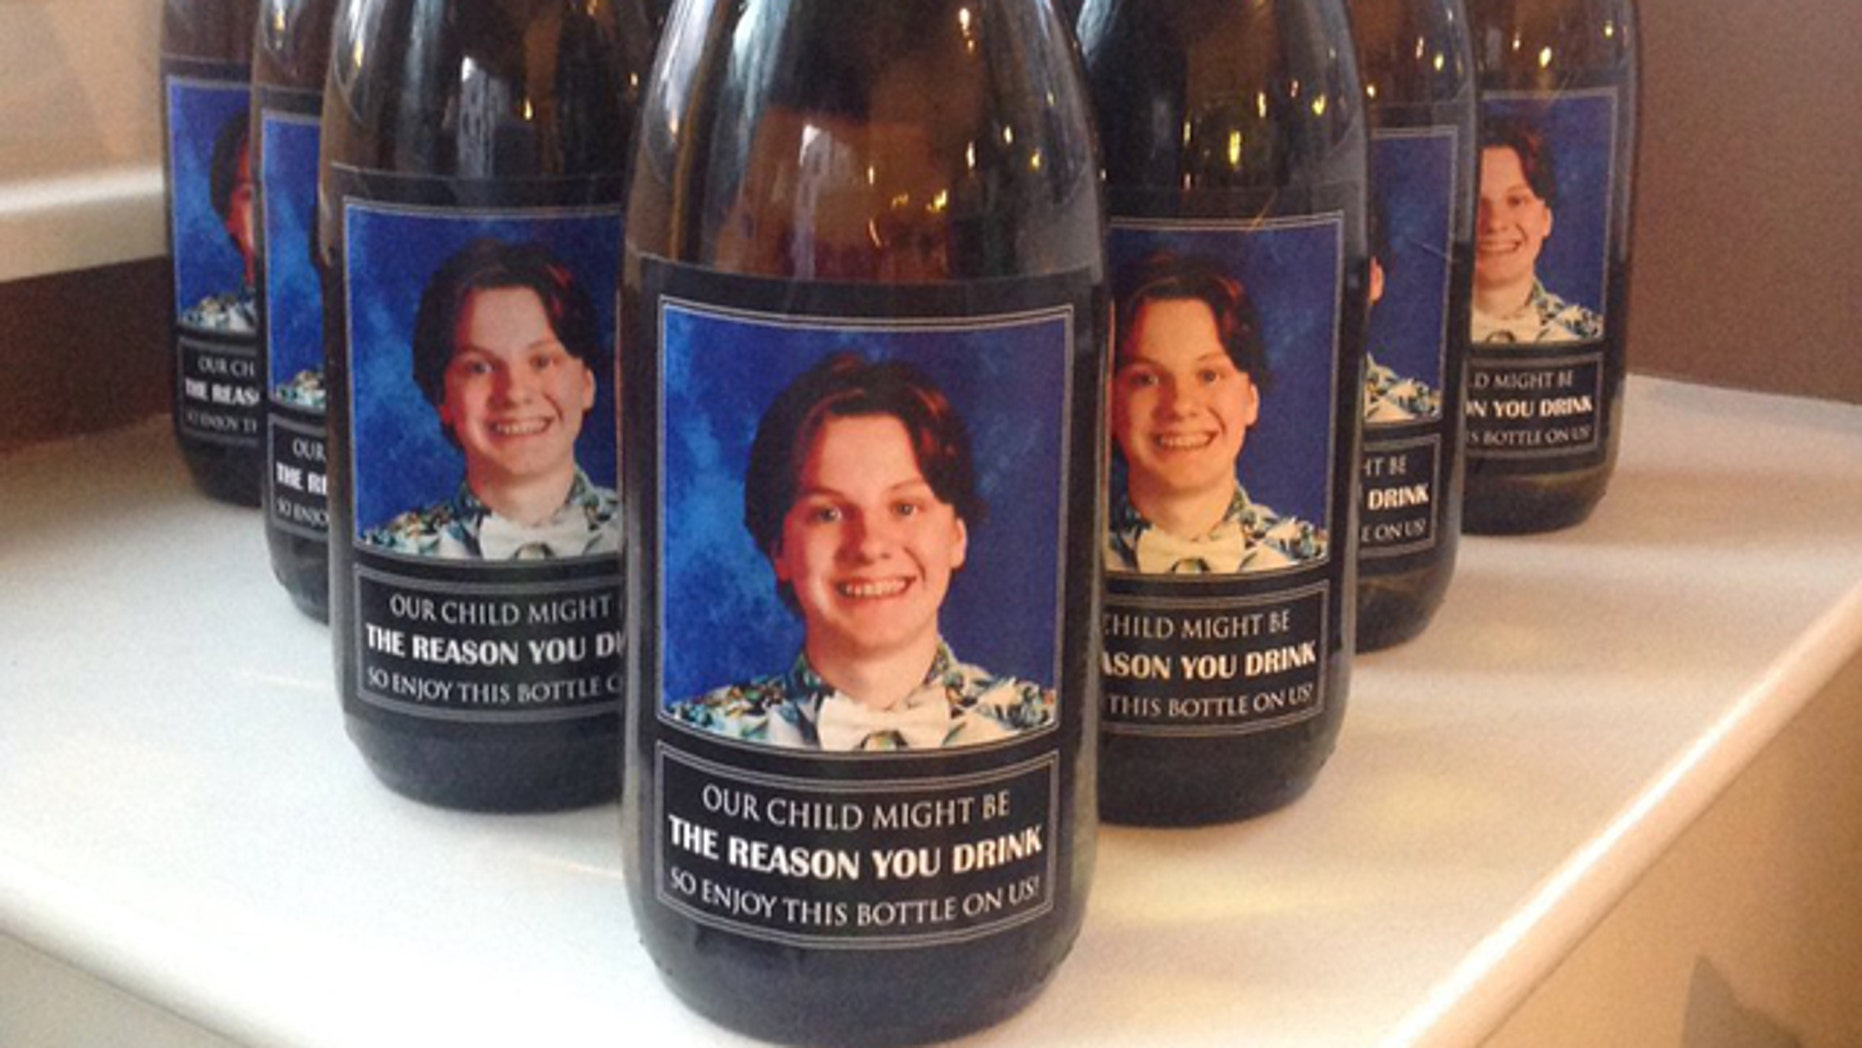 An elementary school teacher in Ohio received an unusual personalized bottle of wine as a Christmas gift.